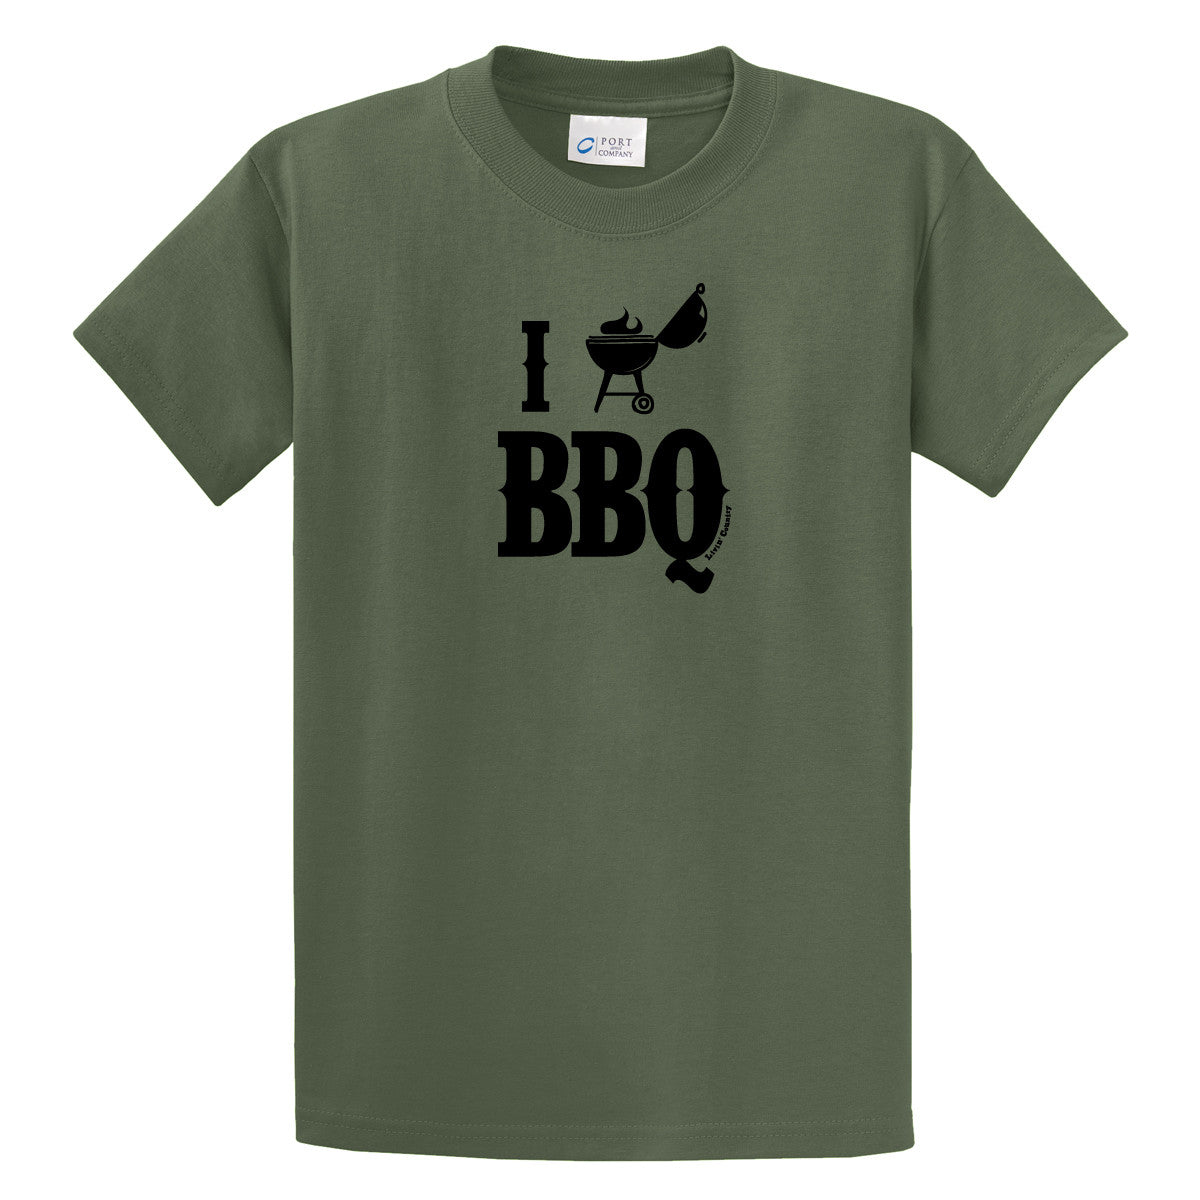 Adult Livin' Country I Love BBQ T-shirt - Livin' Country Apparel & Accessories  - 1